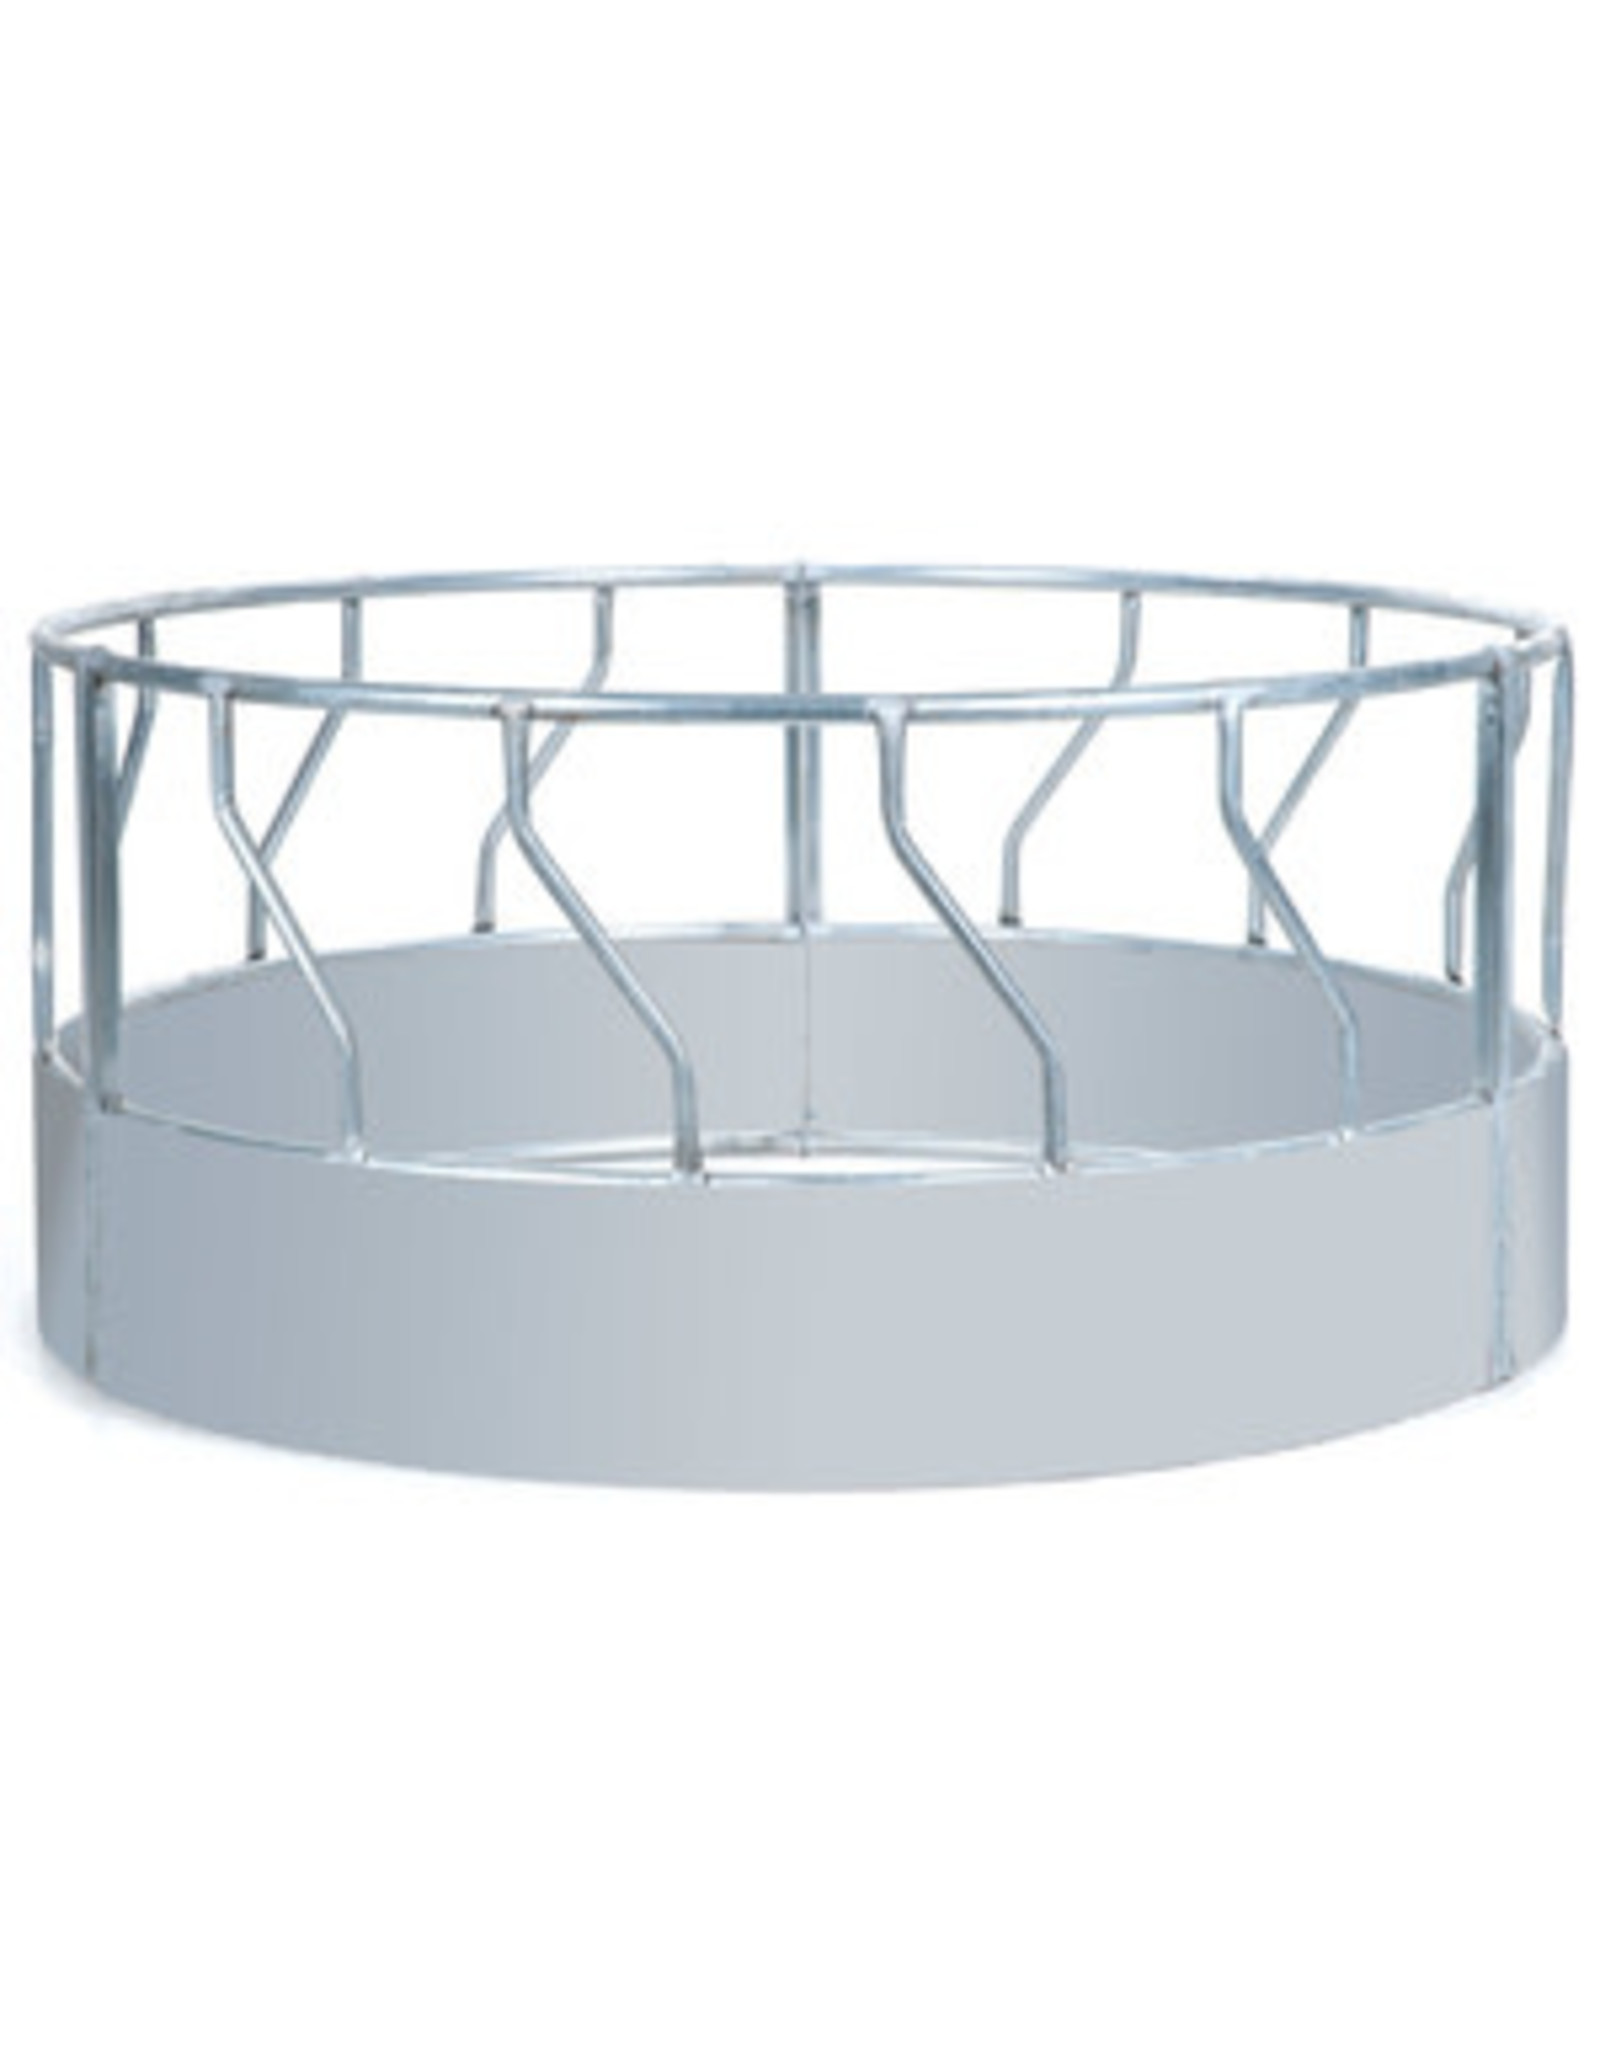 Bale Feeder, Hay Ring with solid metal bottom